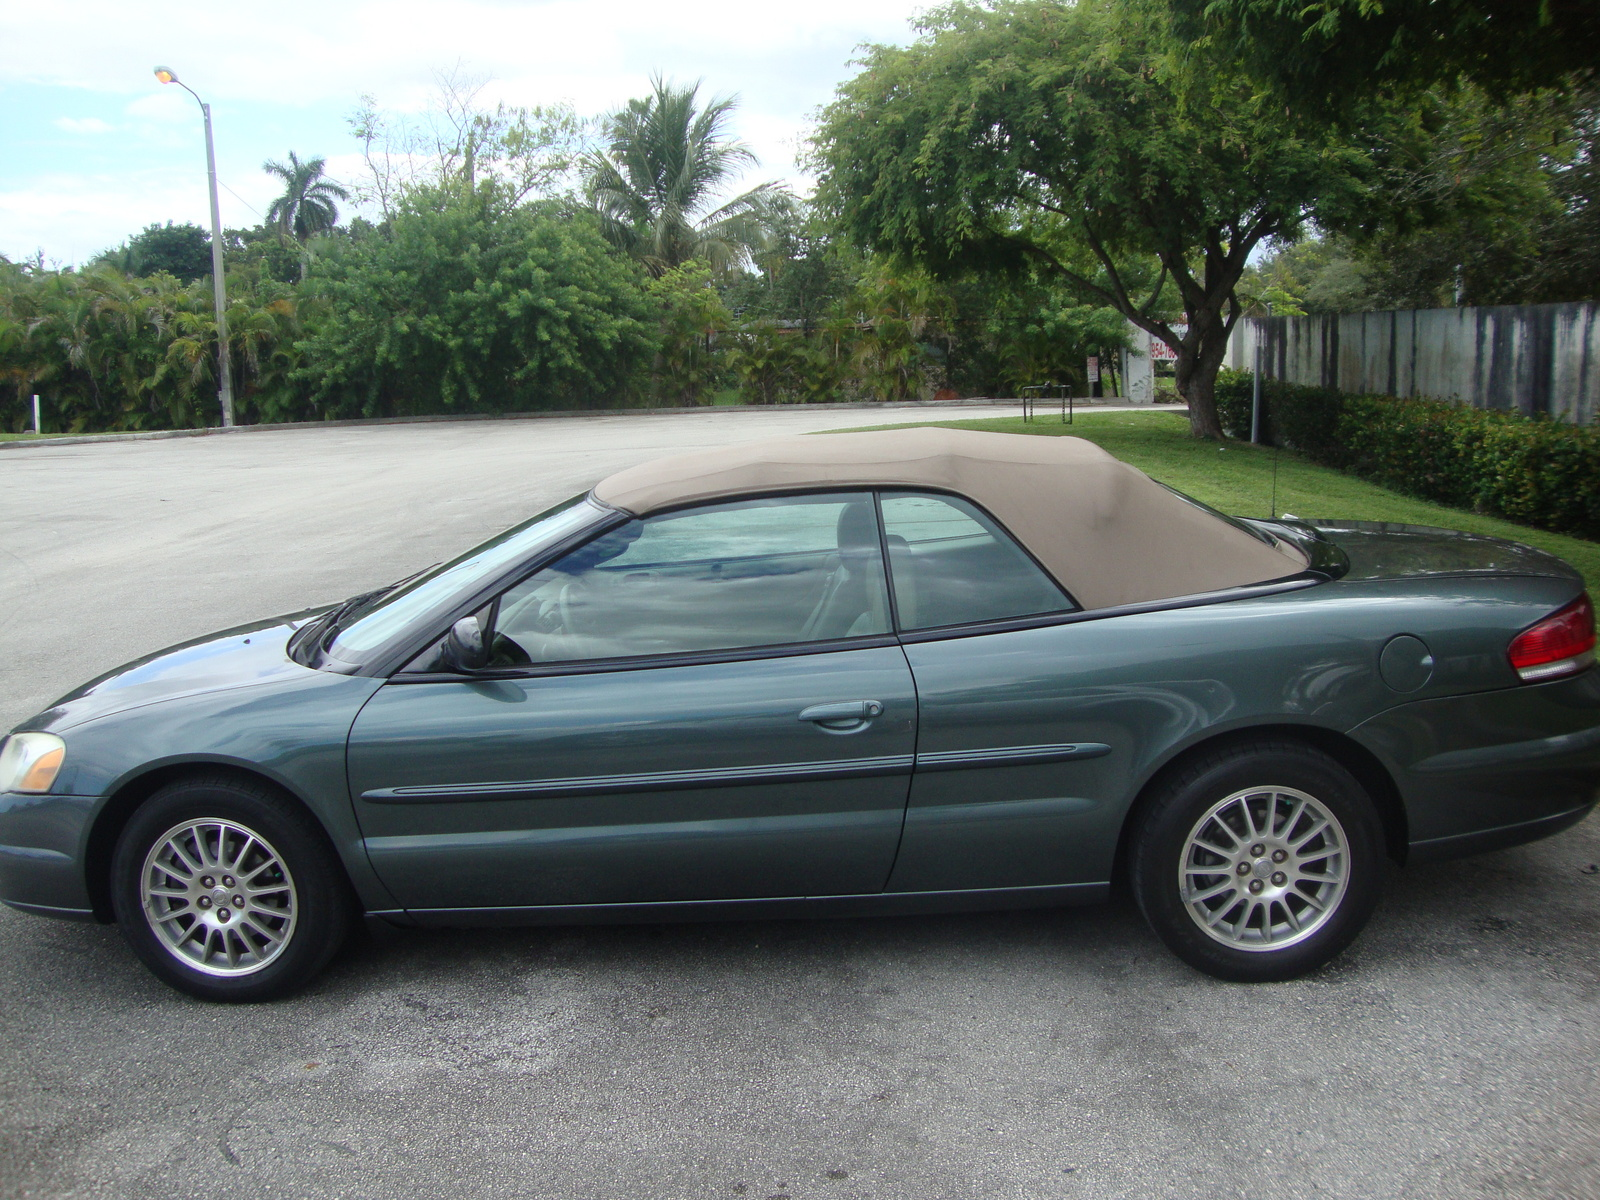 1997 chrysler sebring jxi engine diagram 1997 chrysler. Black Bedroom Furniture Sets. Home Design Ideas